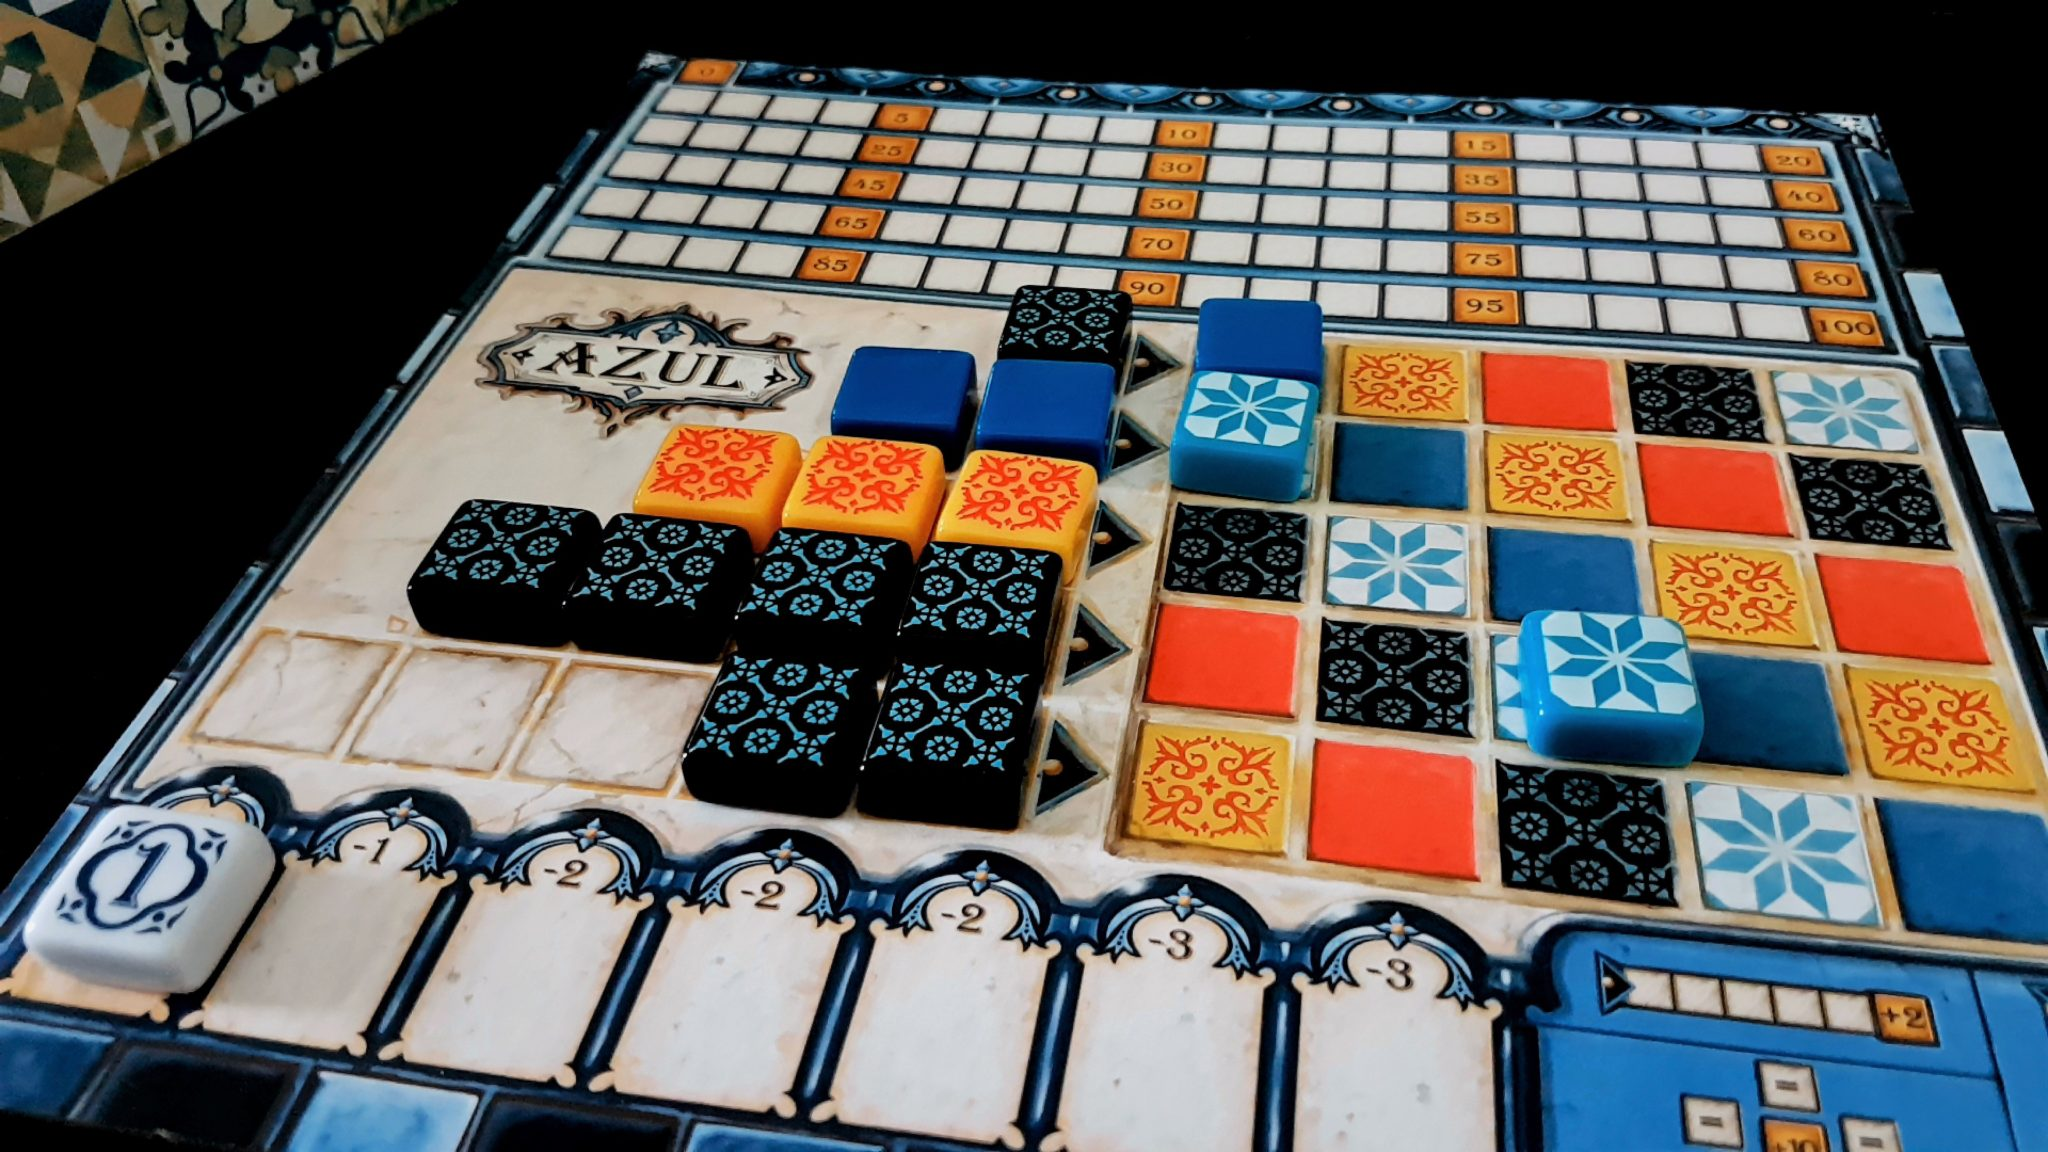 An untidy Azul board